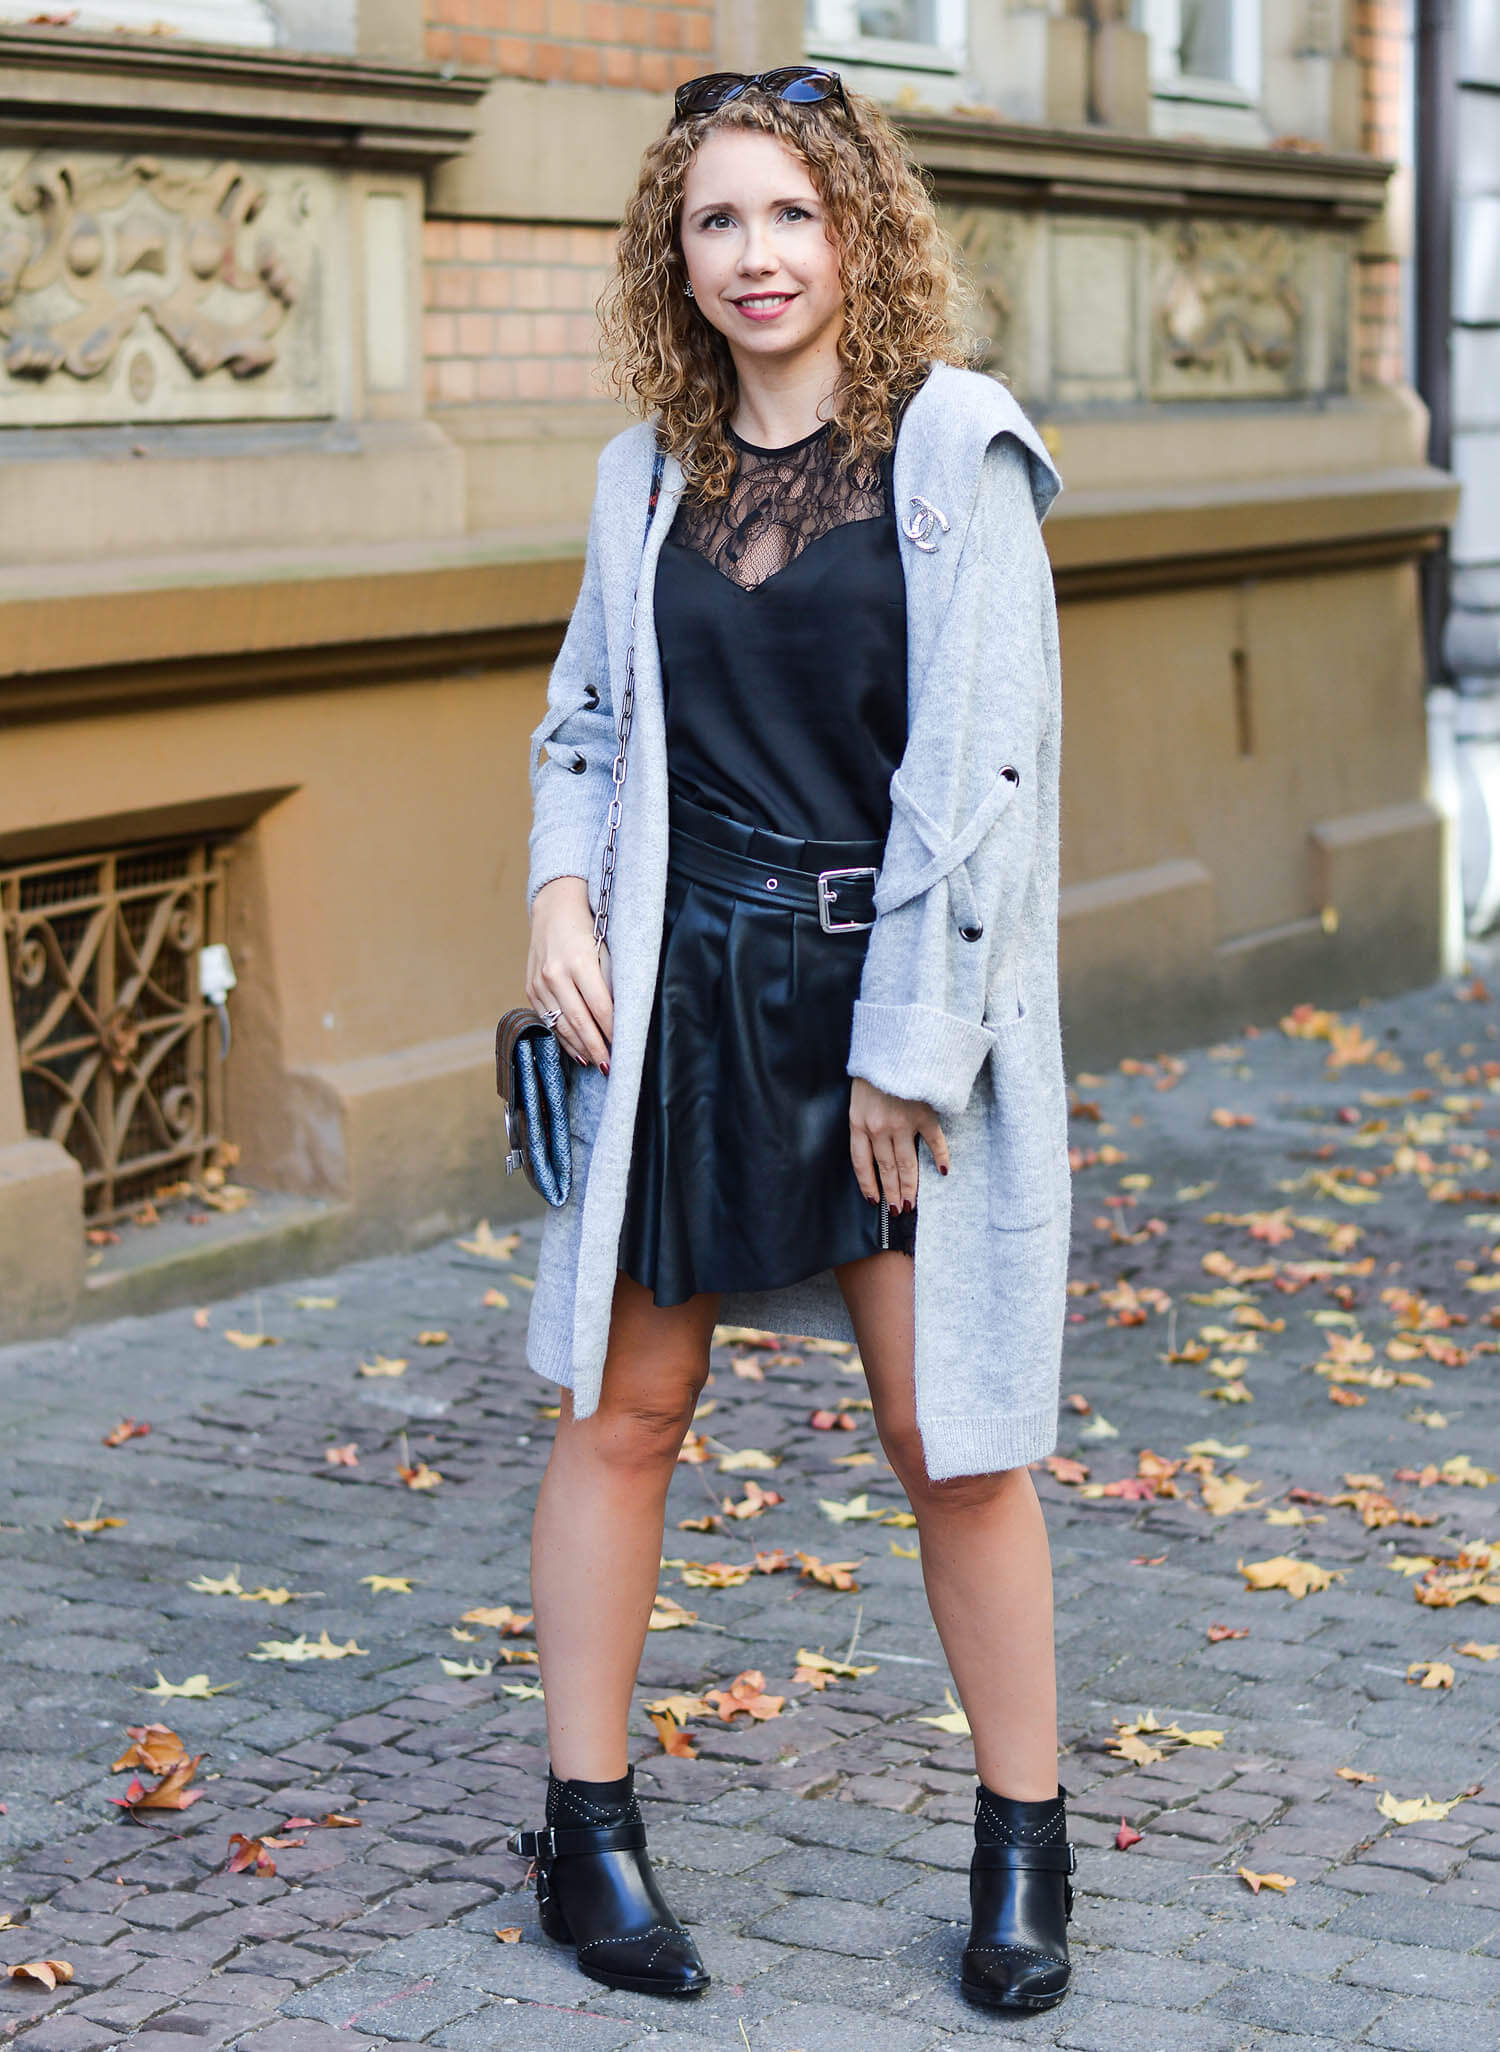 Kationette-fashionblogger-nrw-Outfit-Grey-Cardigan-Satin-Top-Zara-Leather-Skort-and-Booties-for-Indian-Summer